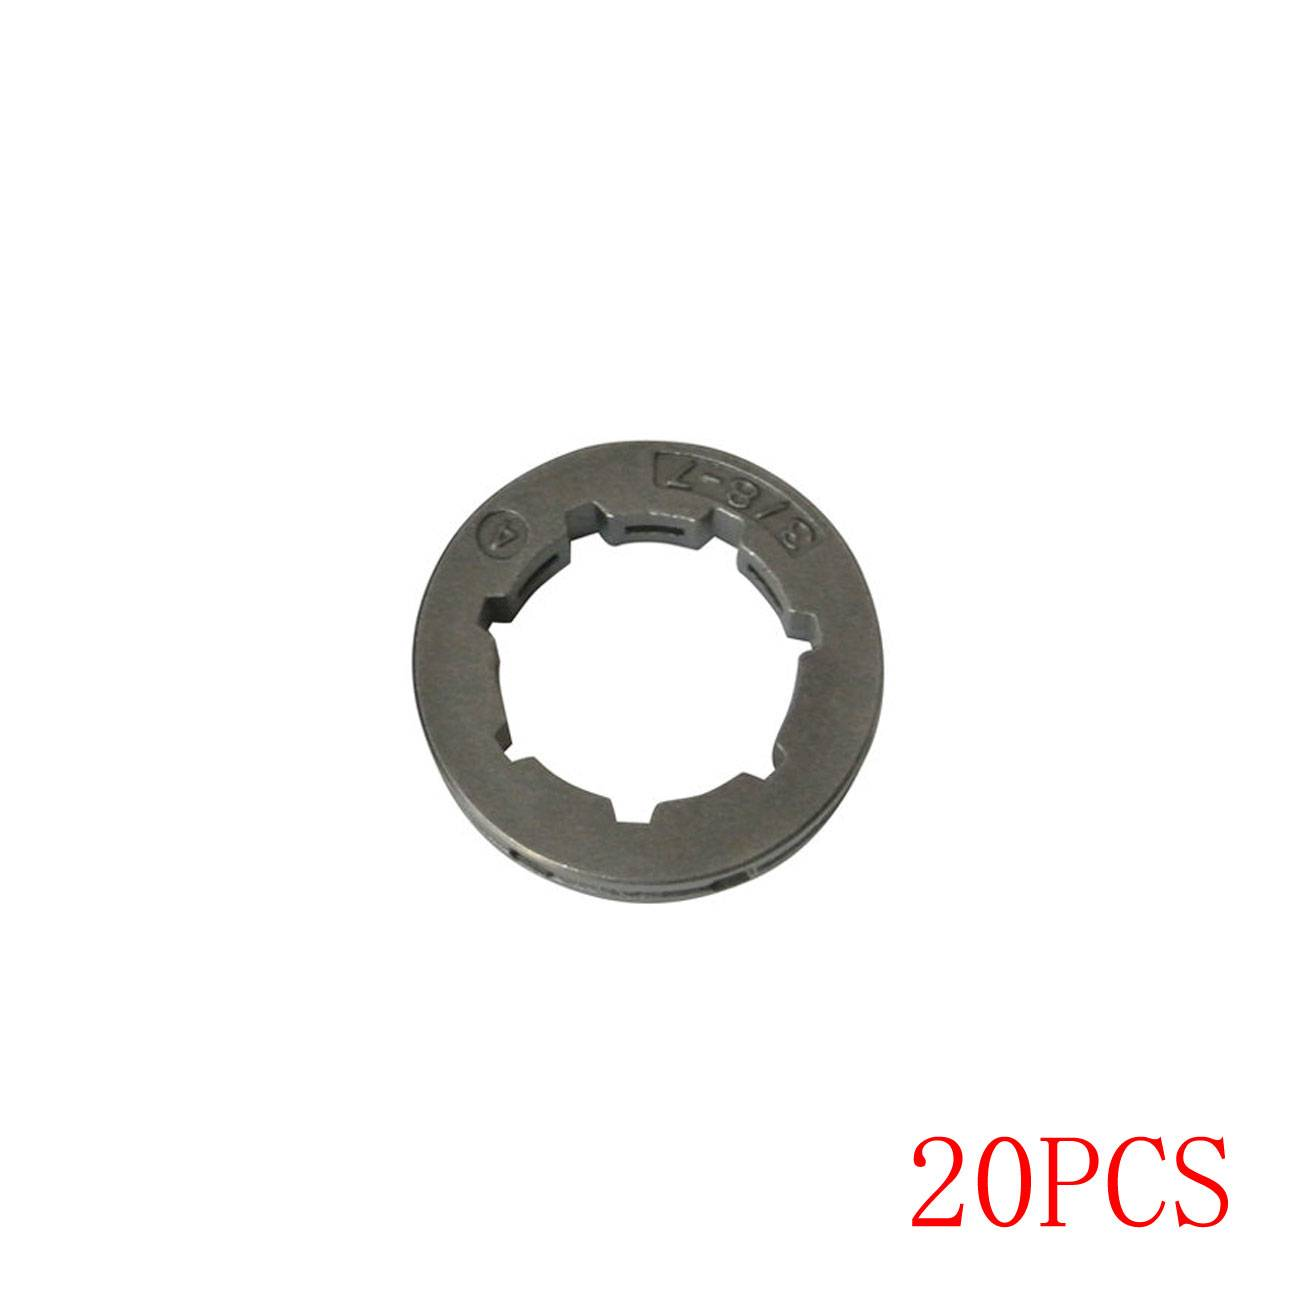 20*Chainsaw Chain Sprocket Rim 3/8 8 Tooth For STIHL MS660 066 MS650 064 MS661 цепь stihl 63 pmc3 picco 55 3 8 1 3 16